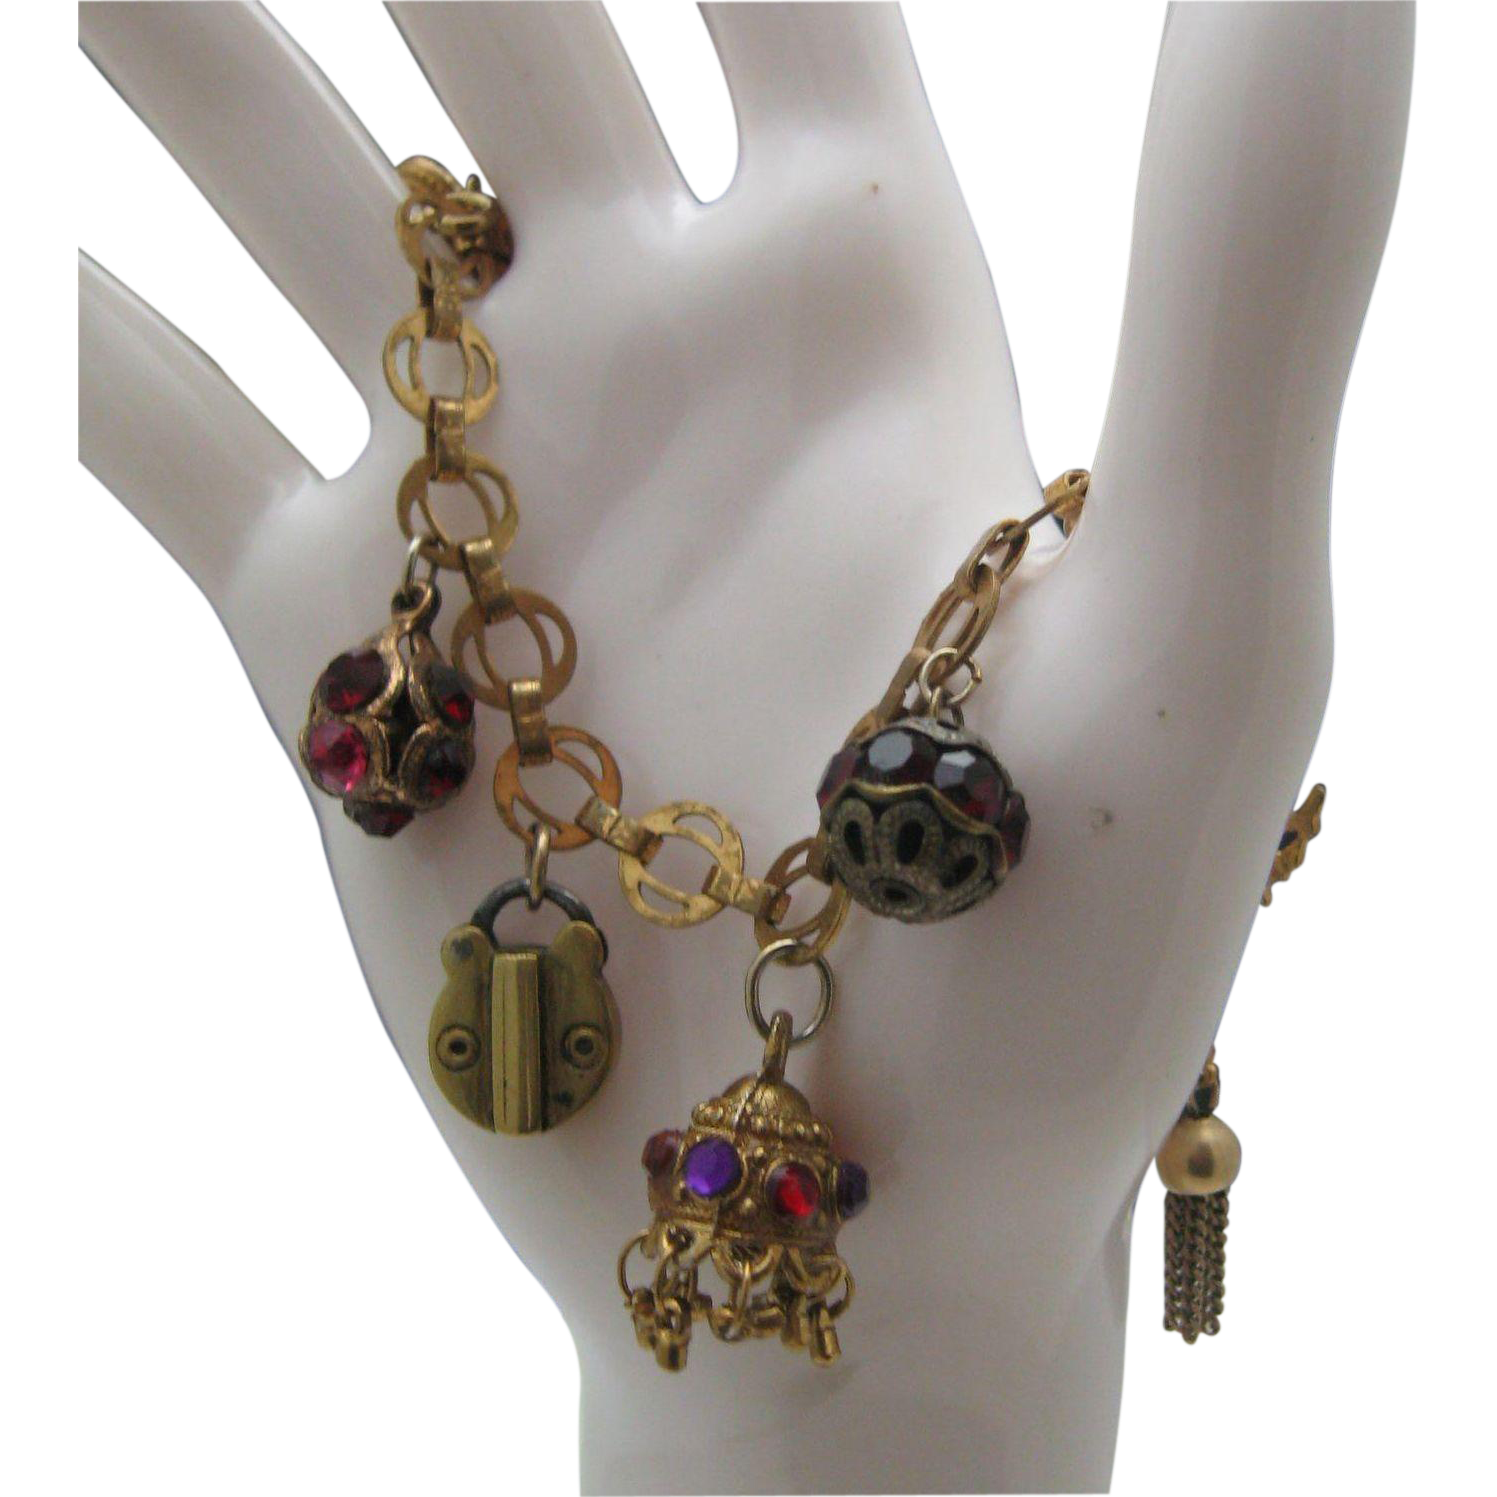 Padlock Love Locket Charm Bracelet c1950